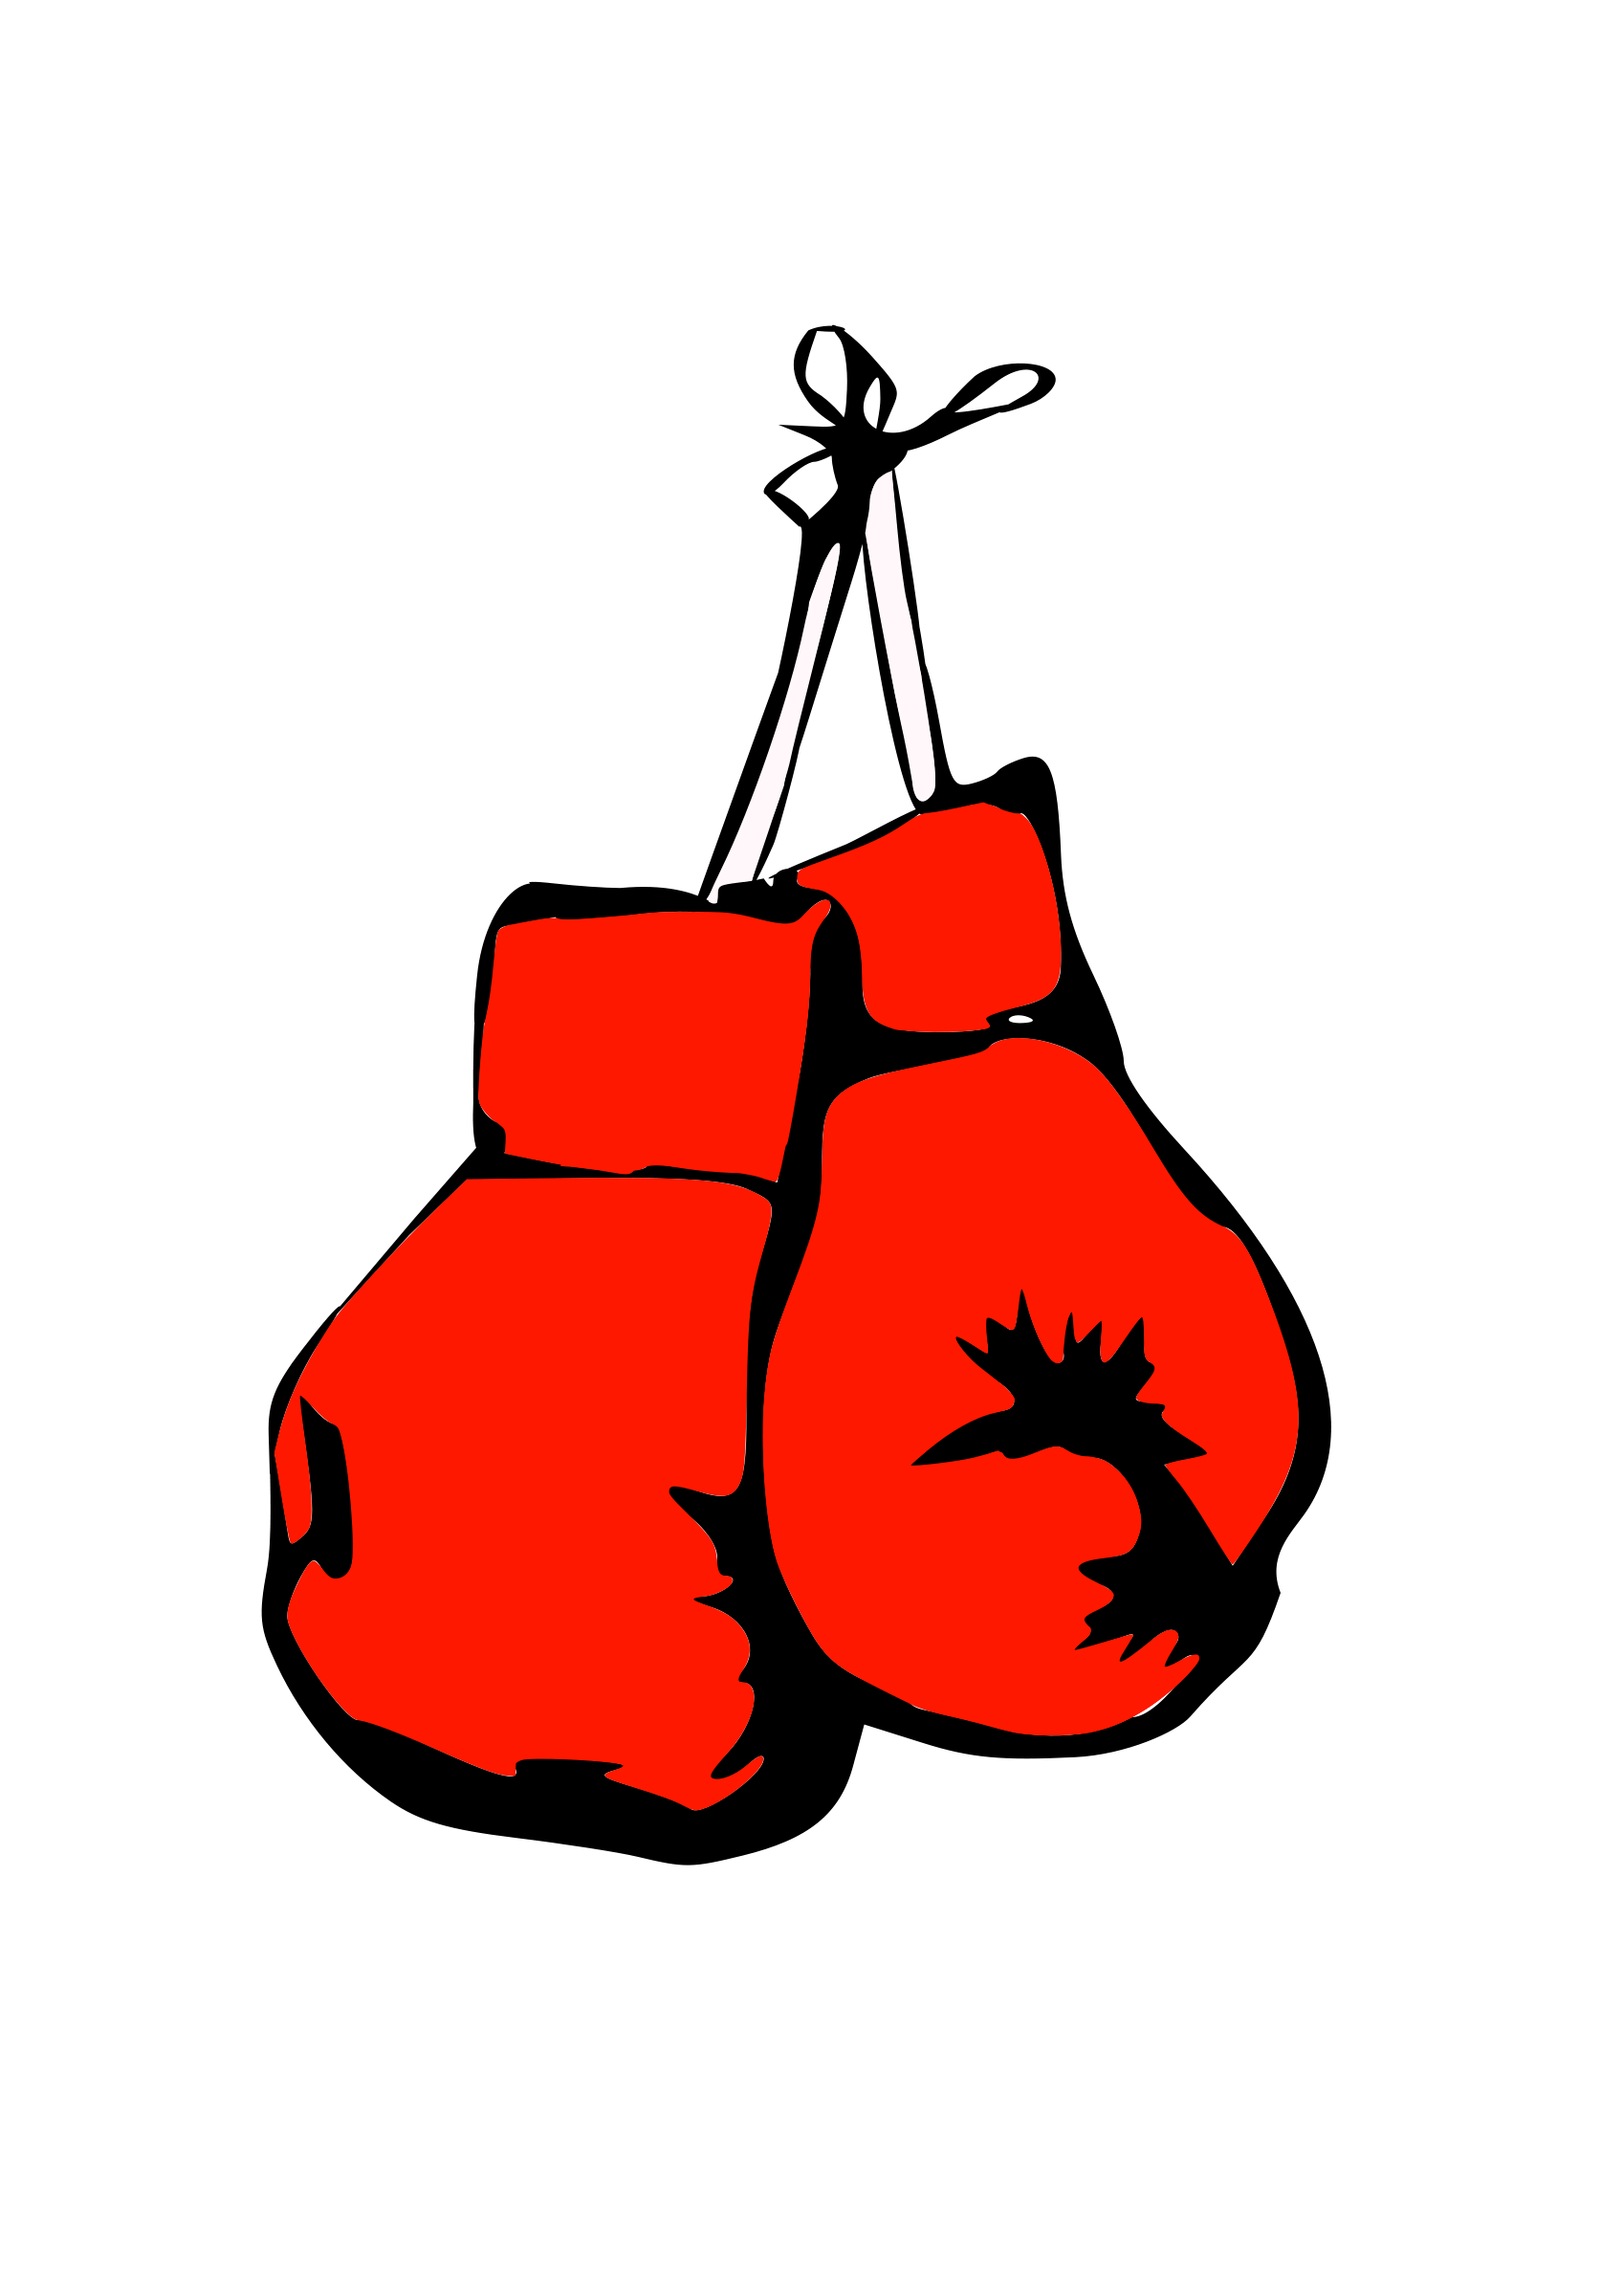 Images clip art library. Boxing clipart boxing glove